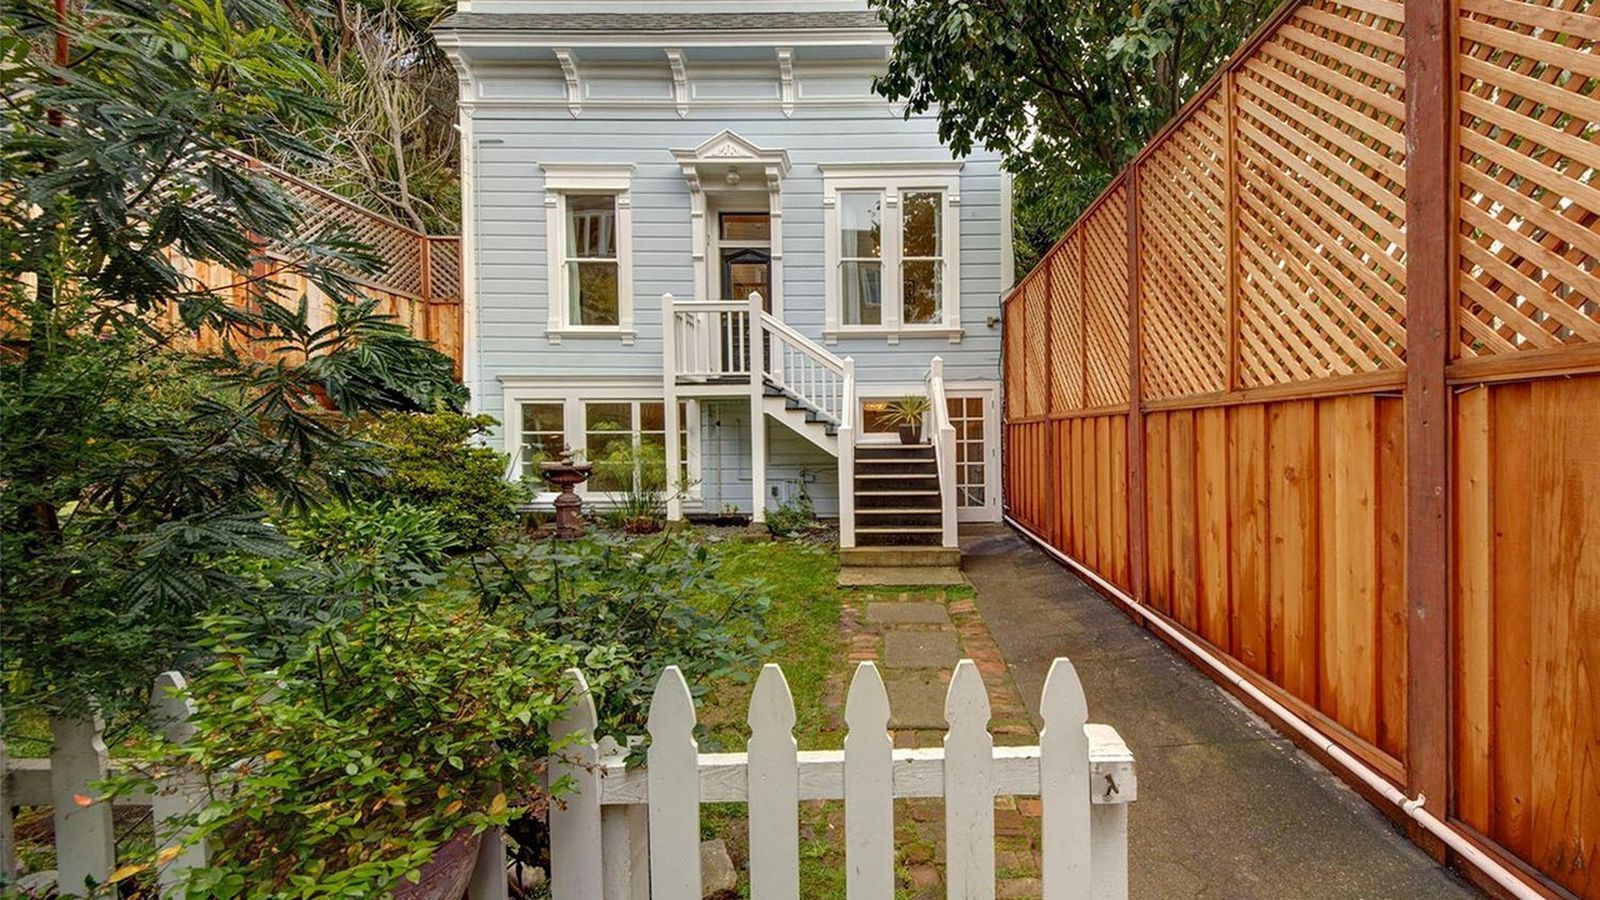 Corona Heights White Picket Fence Charmer Asks 1 5 Million Curbed SF